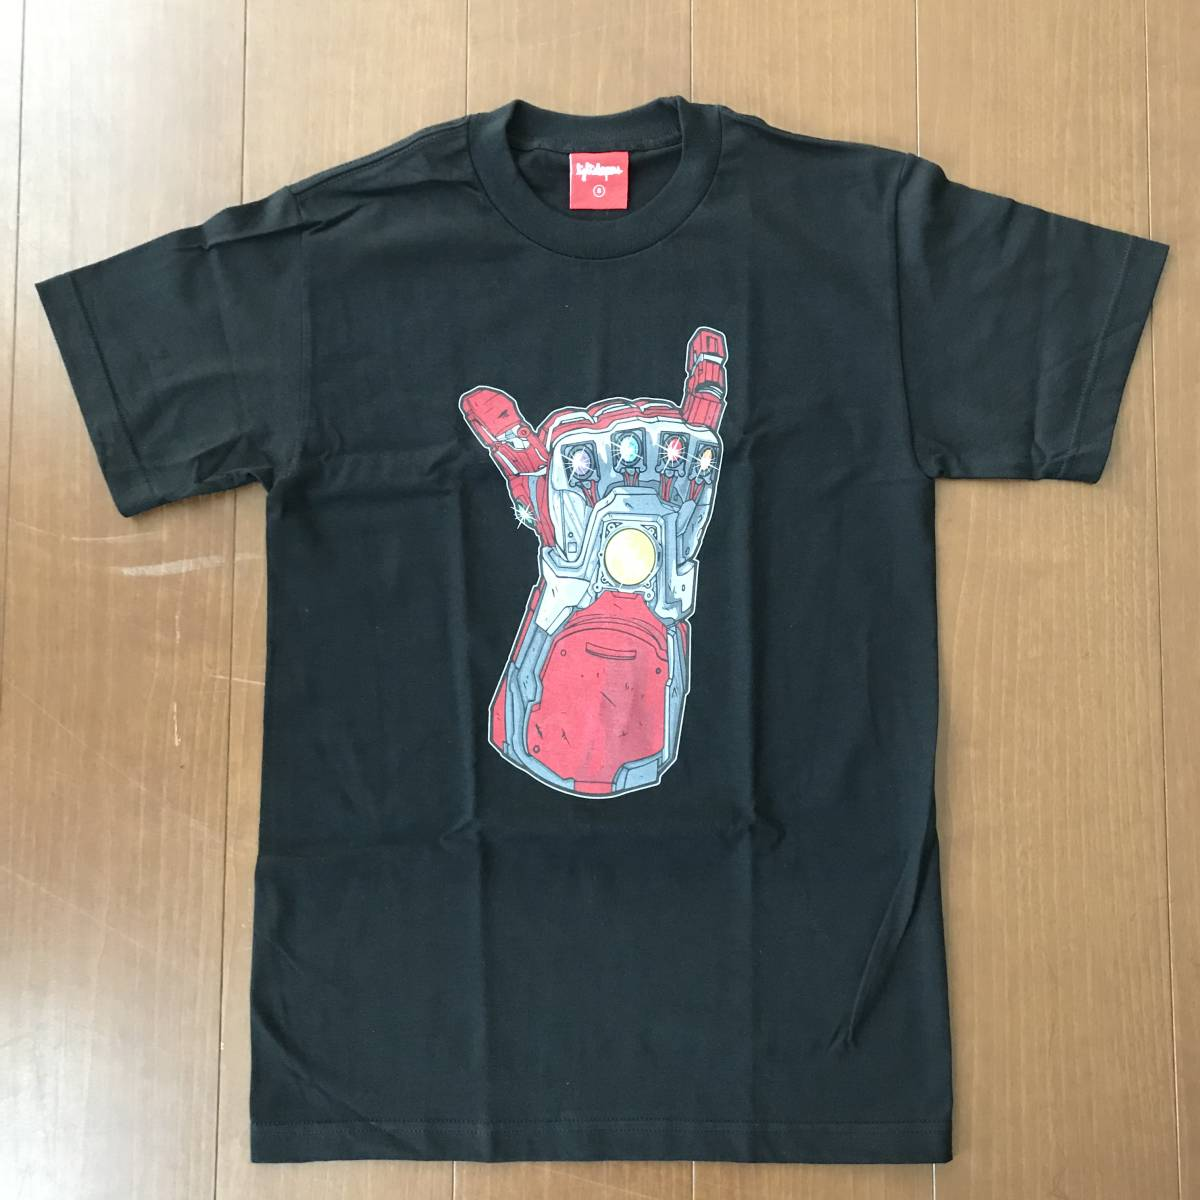 MARVEL AVENGERS アベンジャーズ エンドゲーム Tシャツ HILIFE UDOWN IN4MATION 808ALLDAY 808 ALL DAY FARMERS MARKET HAWAII USDM HDM